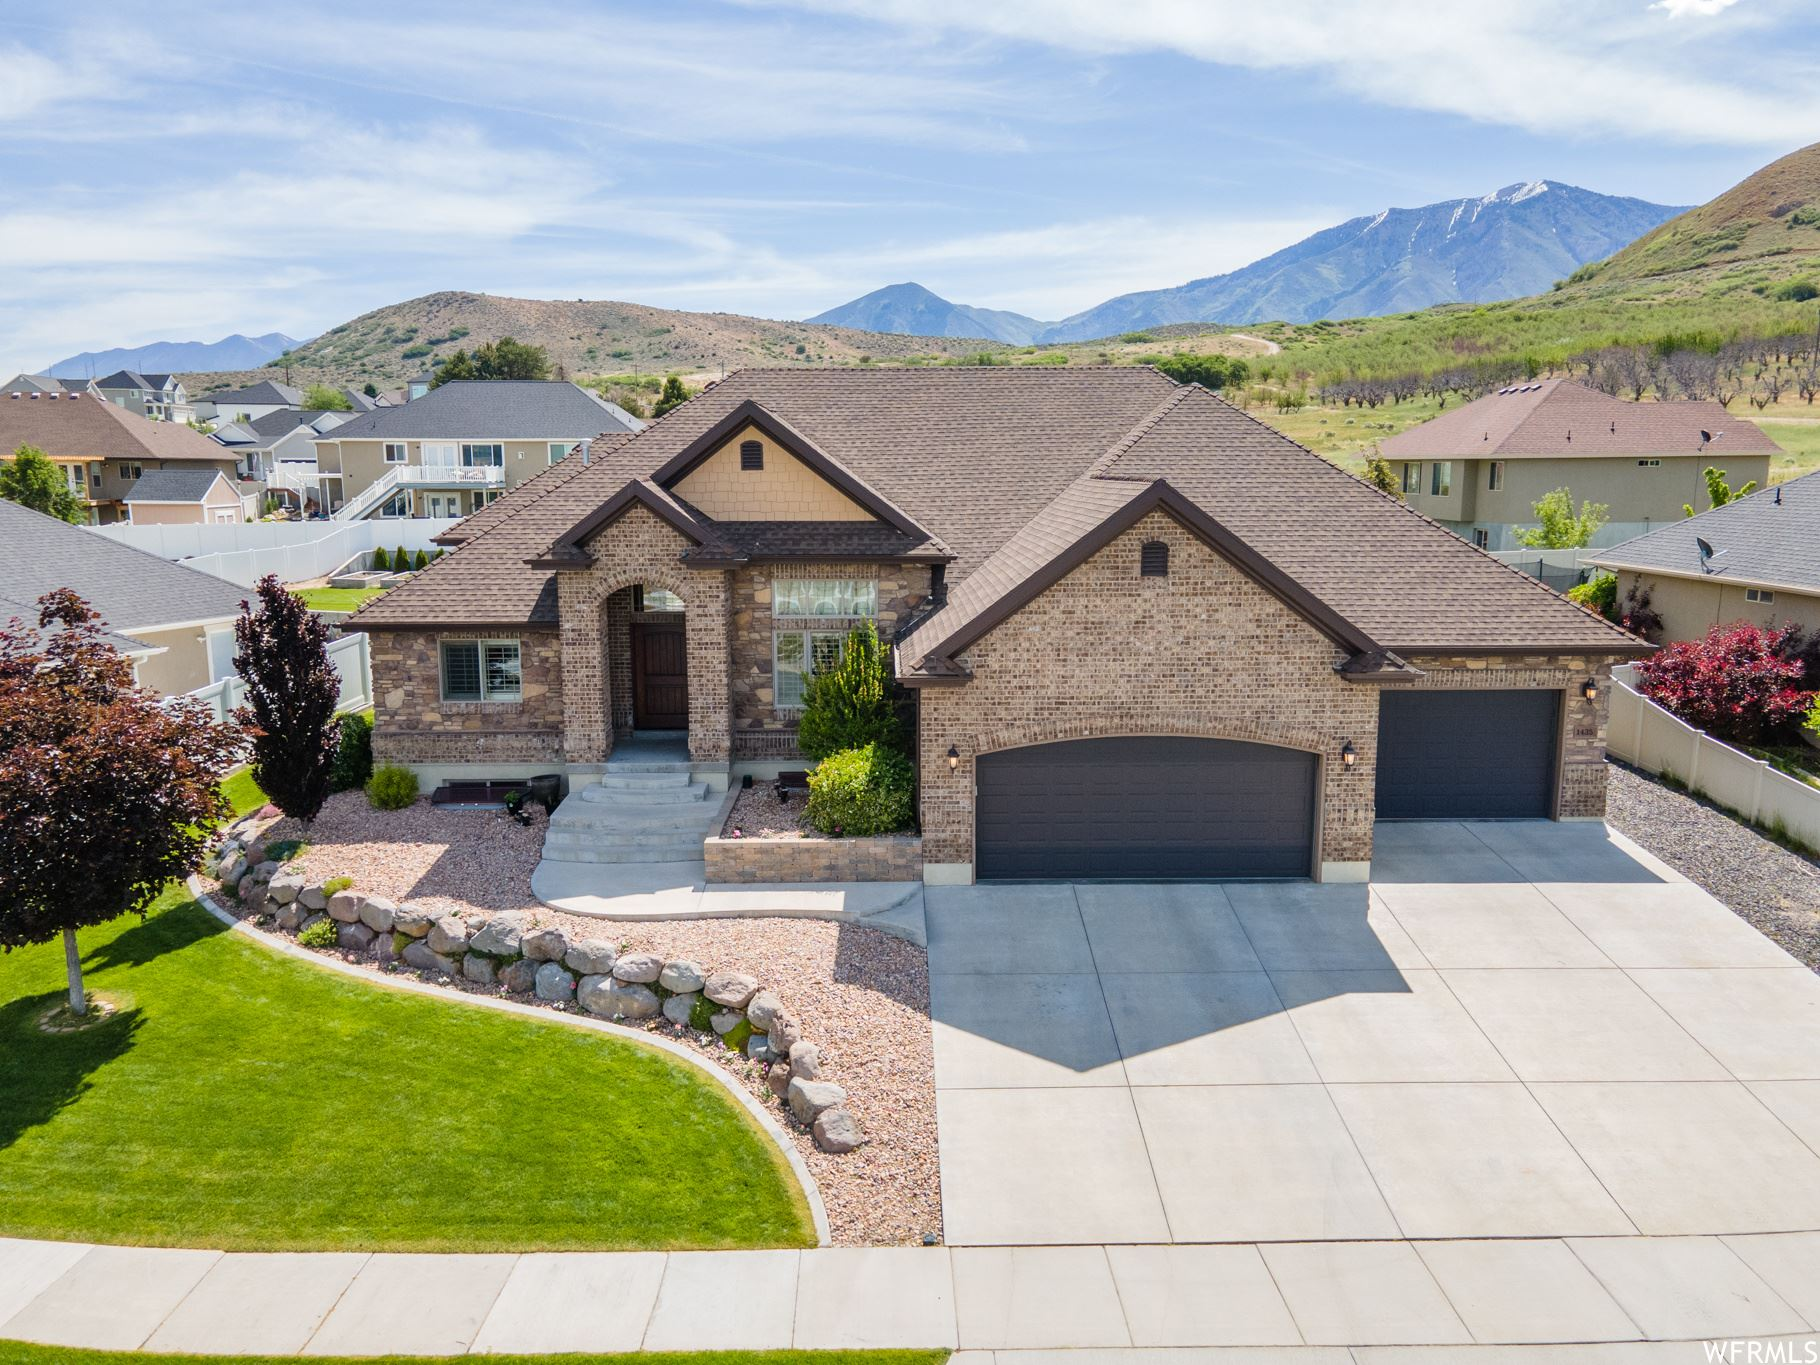 Photo of 1435 RILEY DR, Payson, UT 84651 (MLS # 1746119)